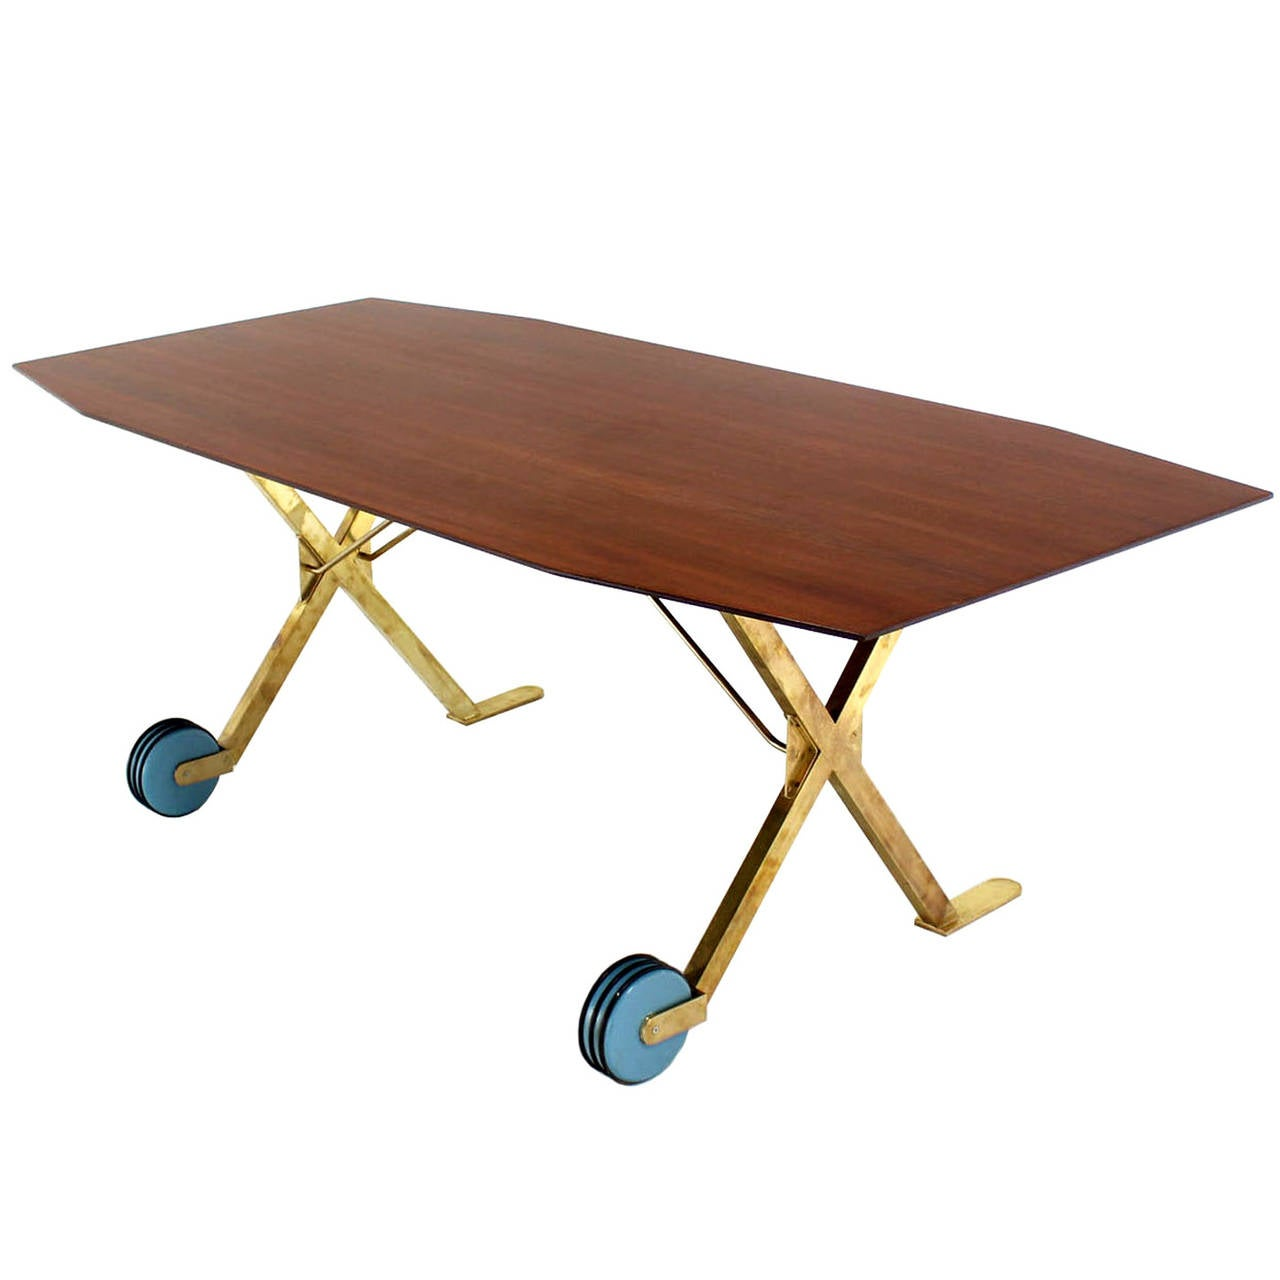 Brass X Base On Wheels Dining Table For Sale At 1stdibs